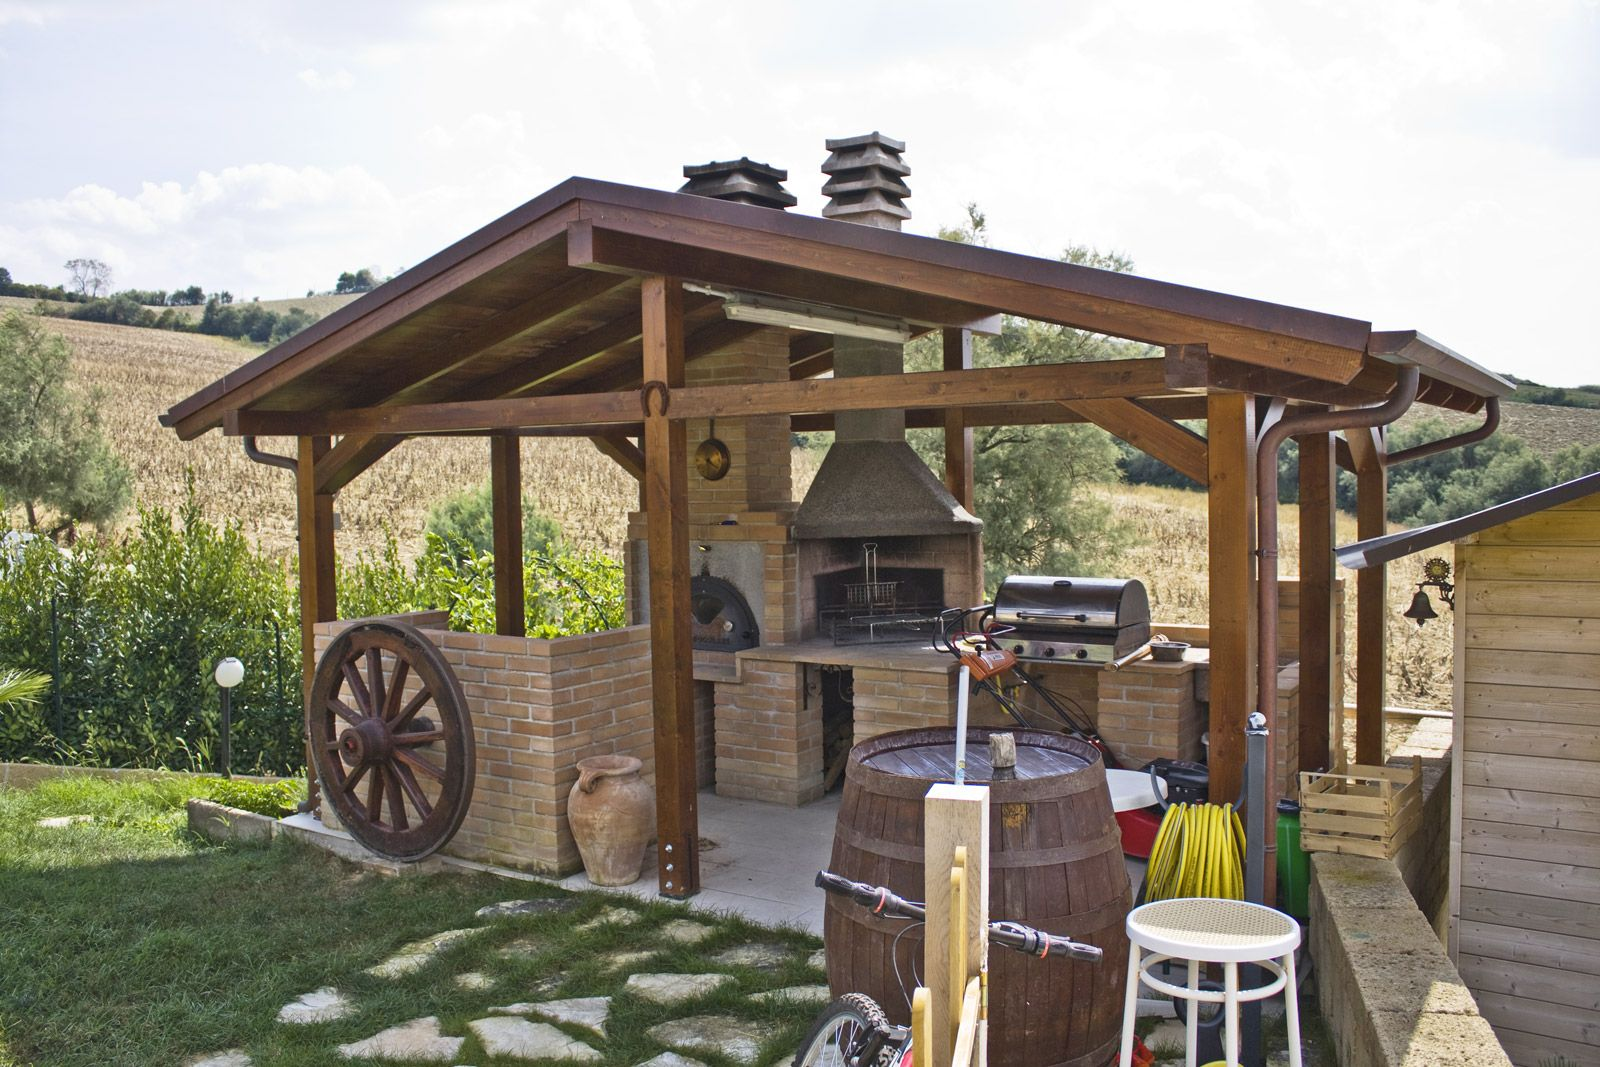 pin by stella hawkins on for the home outdoor kitchen plans outdoor gazebos covered outdoor on outdoor kitchen gazebo ideas id=96459